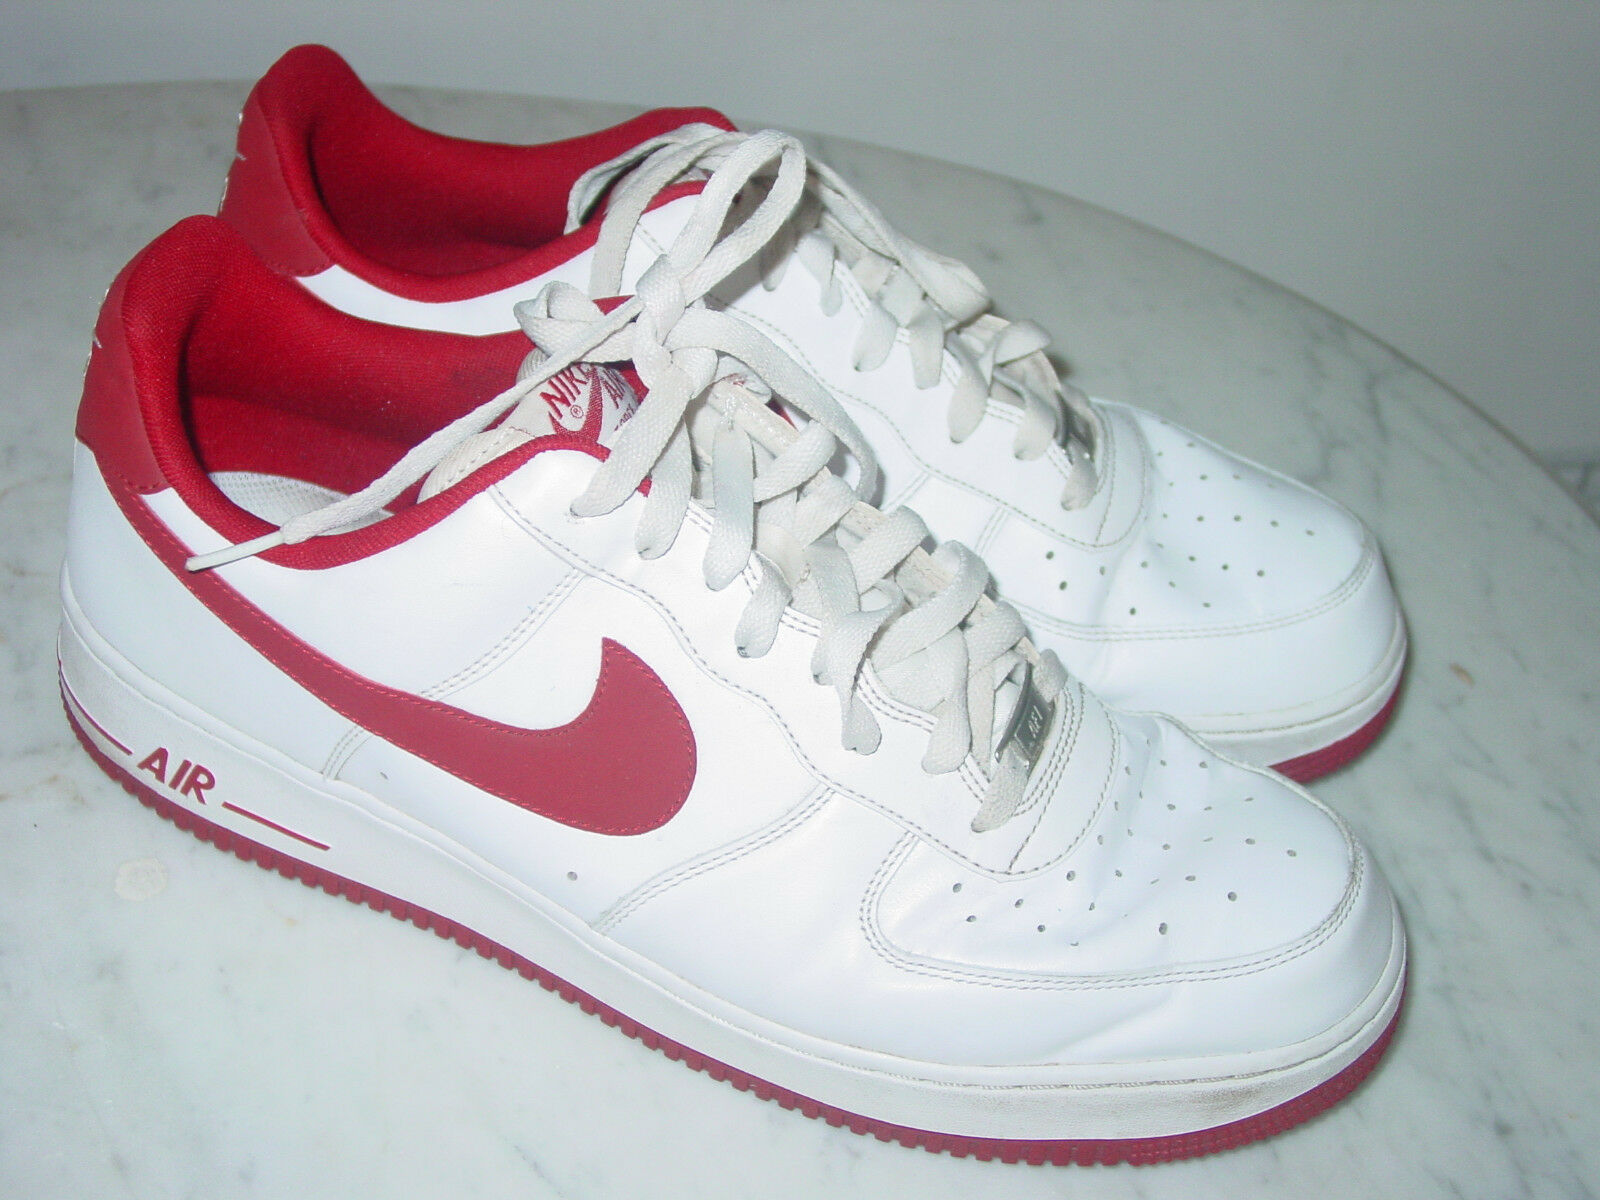 2014 Nike Air Force One 07 White Gym Red Leather Low Basketball shoes  Size 13